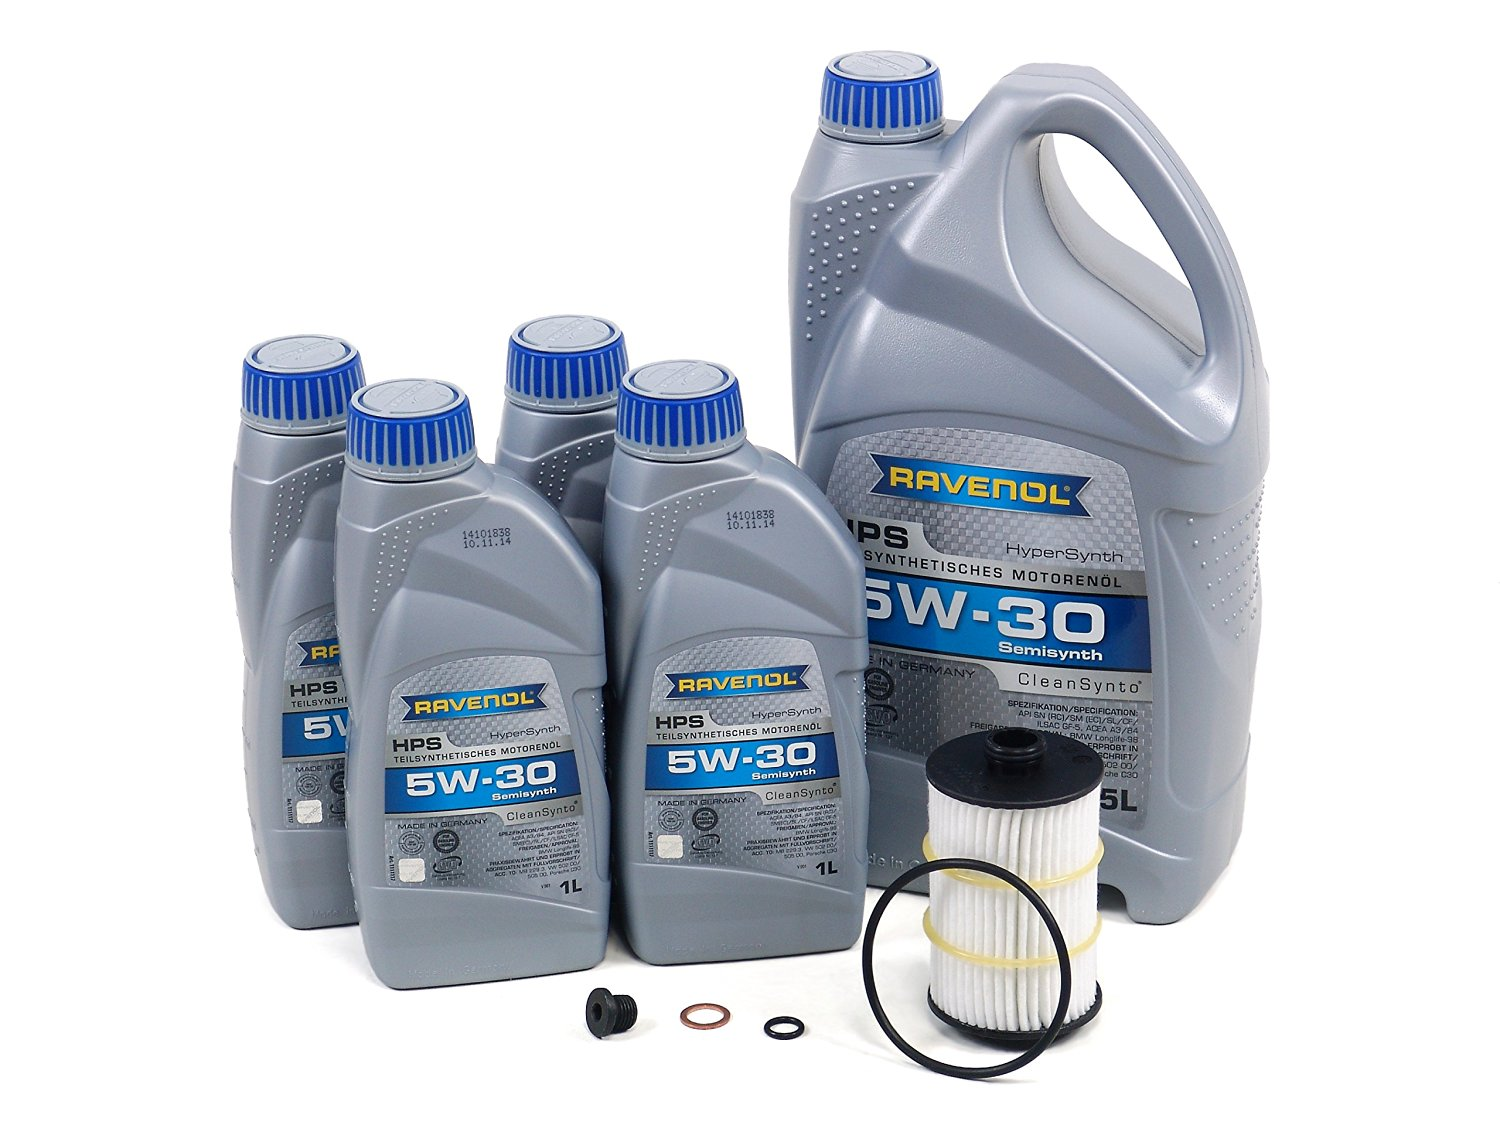 Cheap Oil 0w 30, find Oil 0w 30 deals on line at Alibaba com